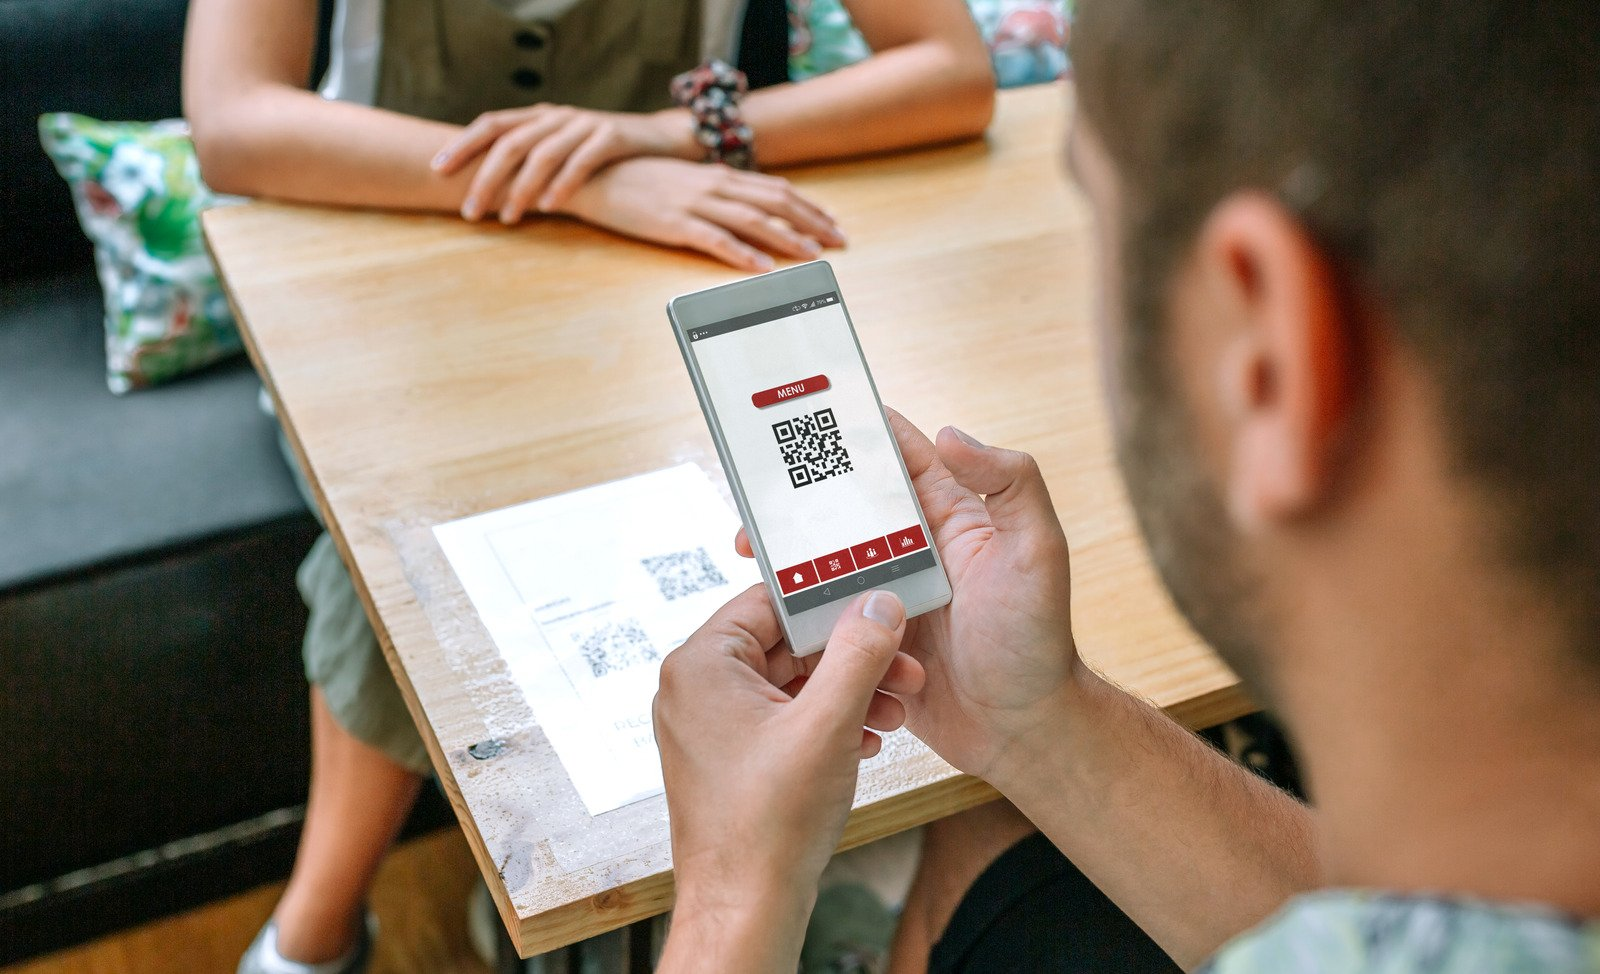 Customer in a restaurant ordering with a QR code scan